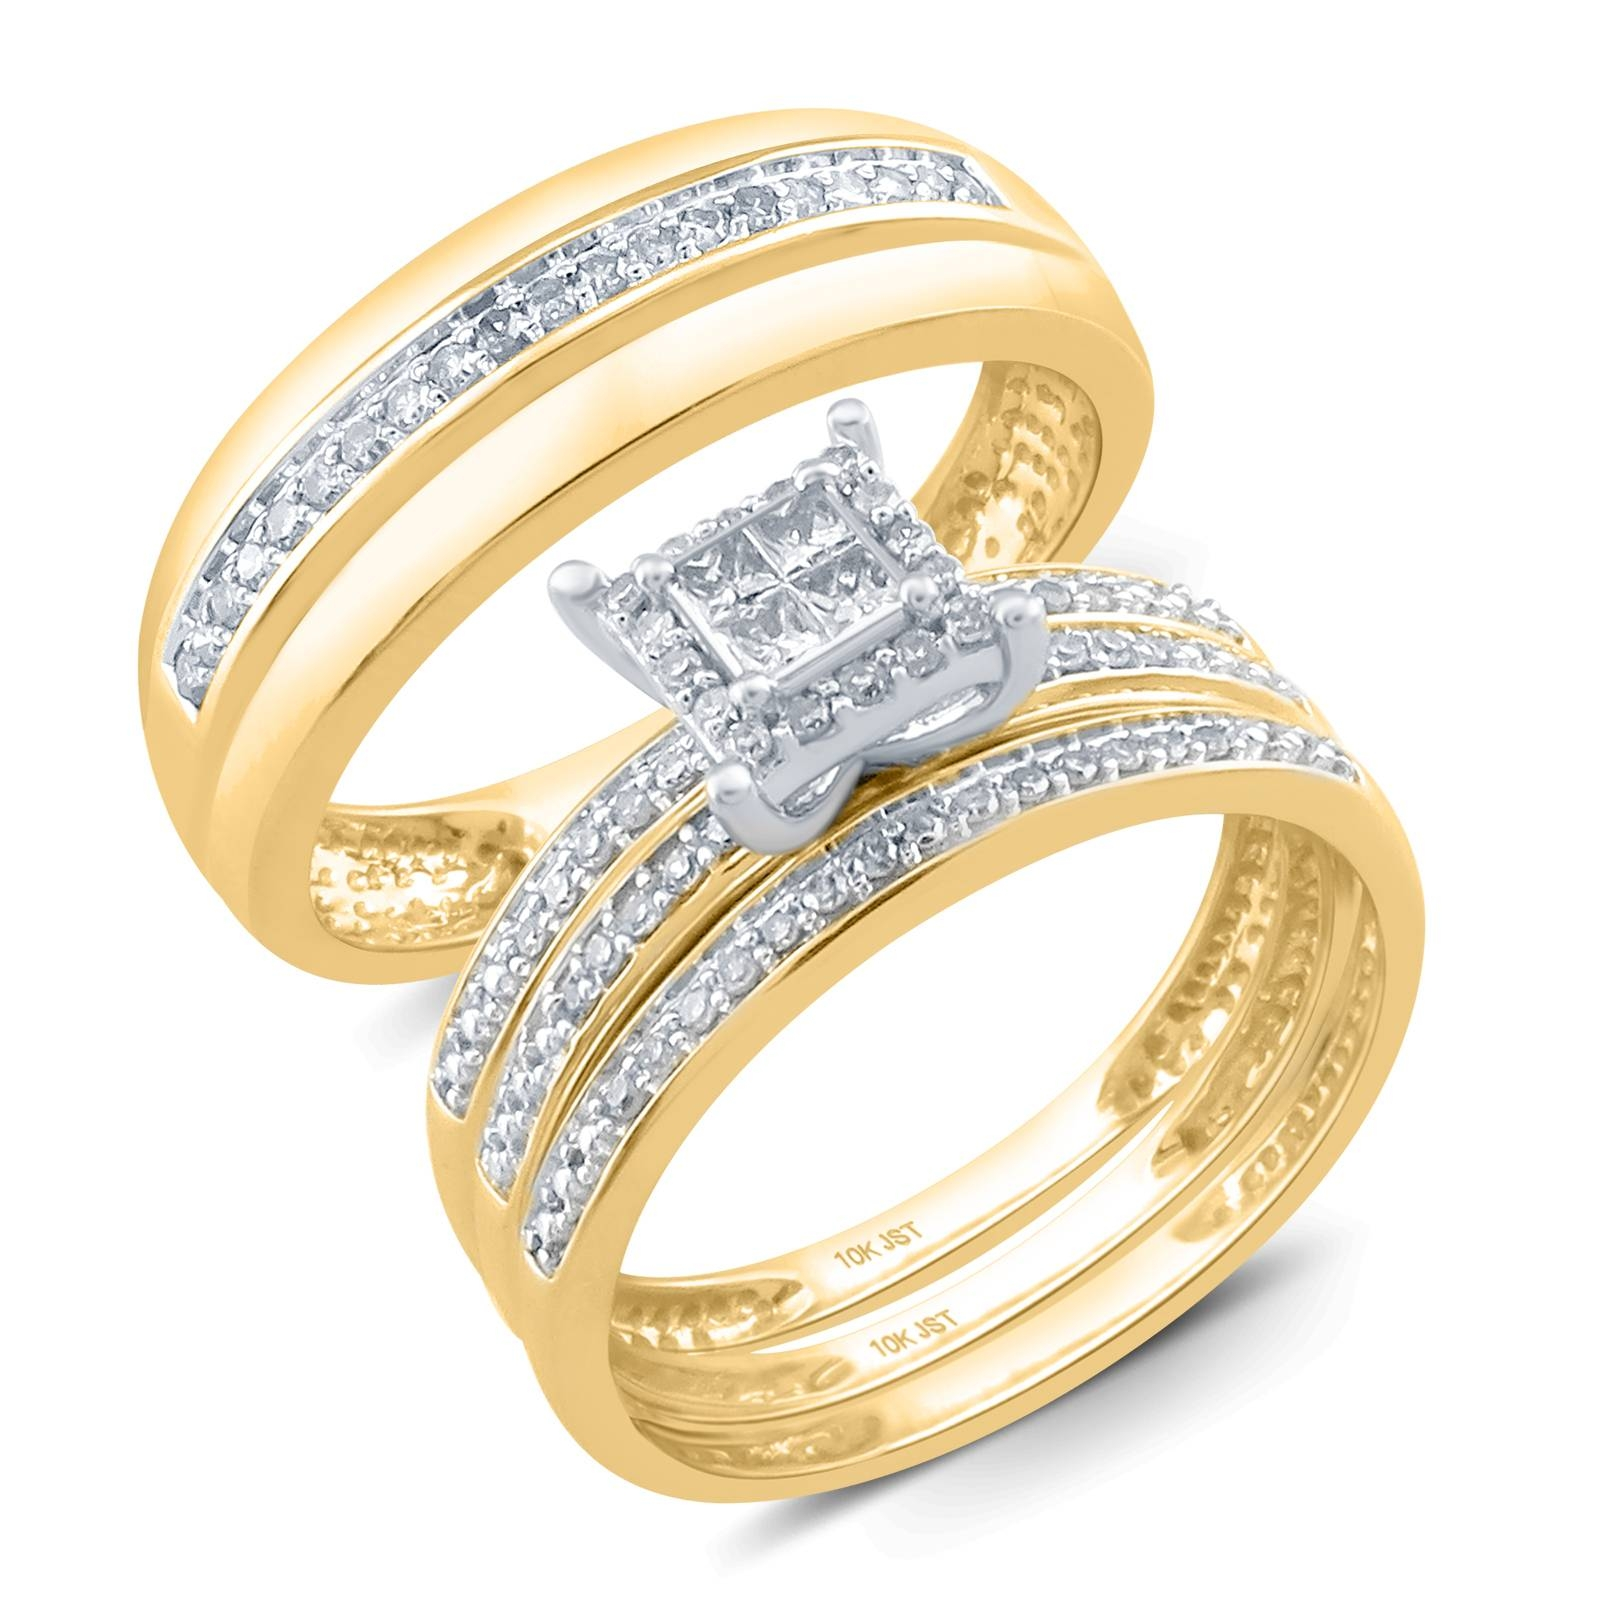 Sears Jewelry Gold Diamond Rings | Wedding, Promise, Diamond With Regard To Engagement Rings At Sears (View 15 of 15)